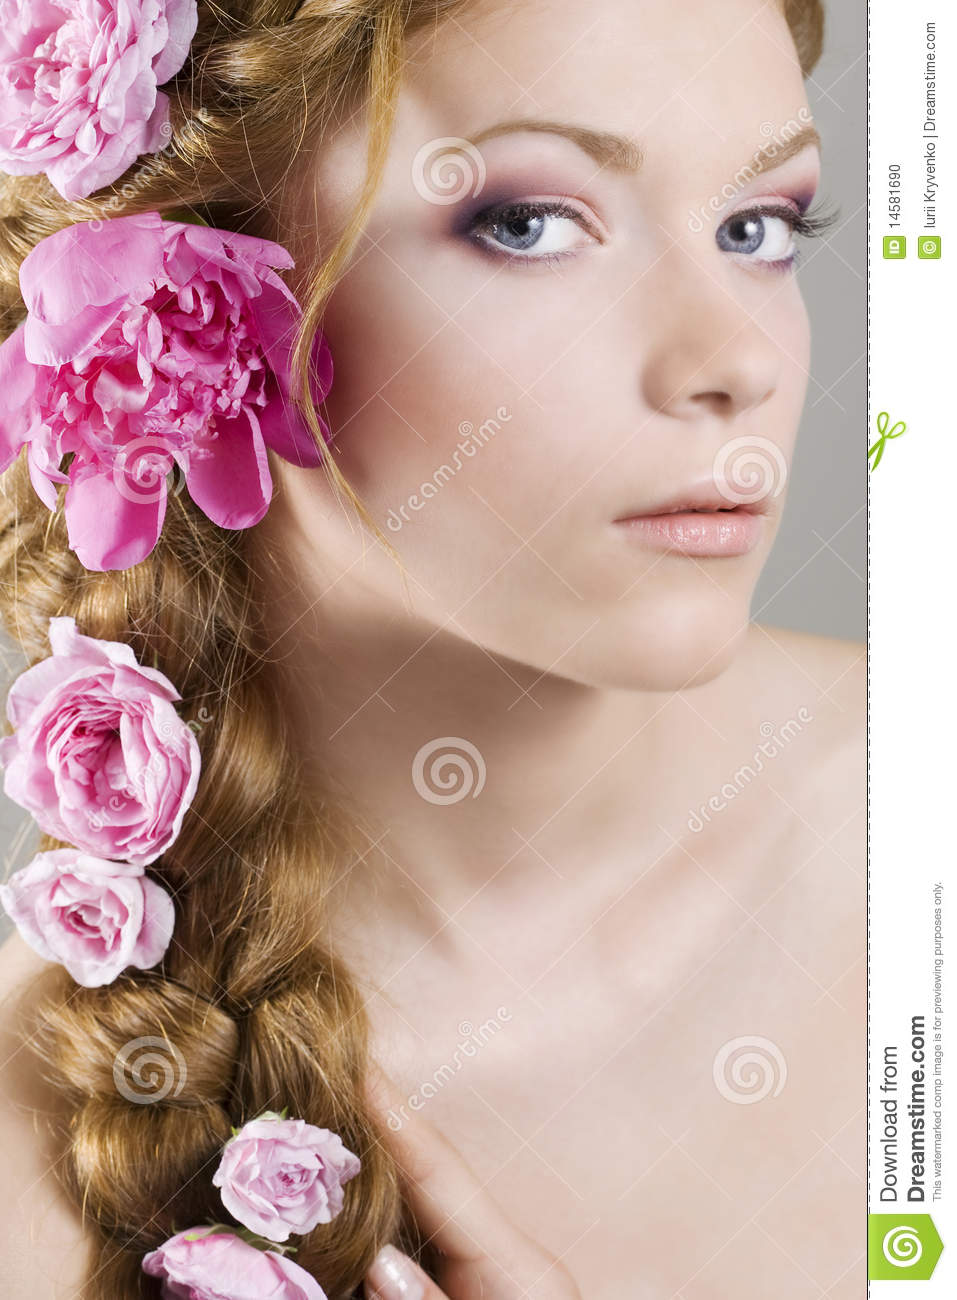 Woman With Flowers In Hair Stock Photo Image 14581690